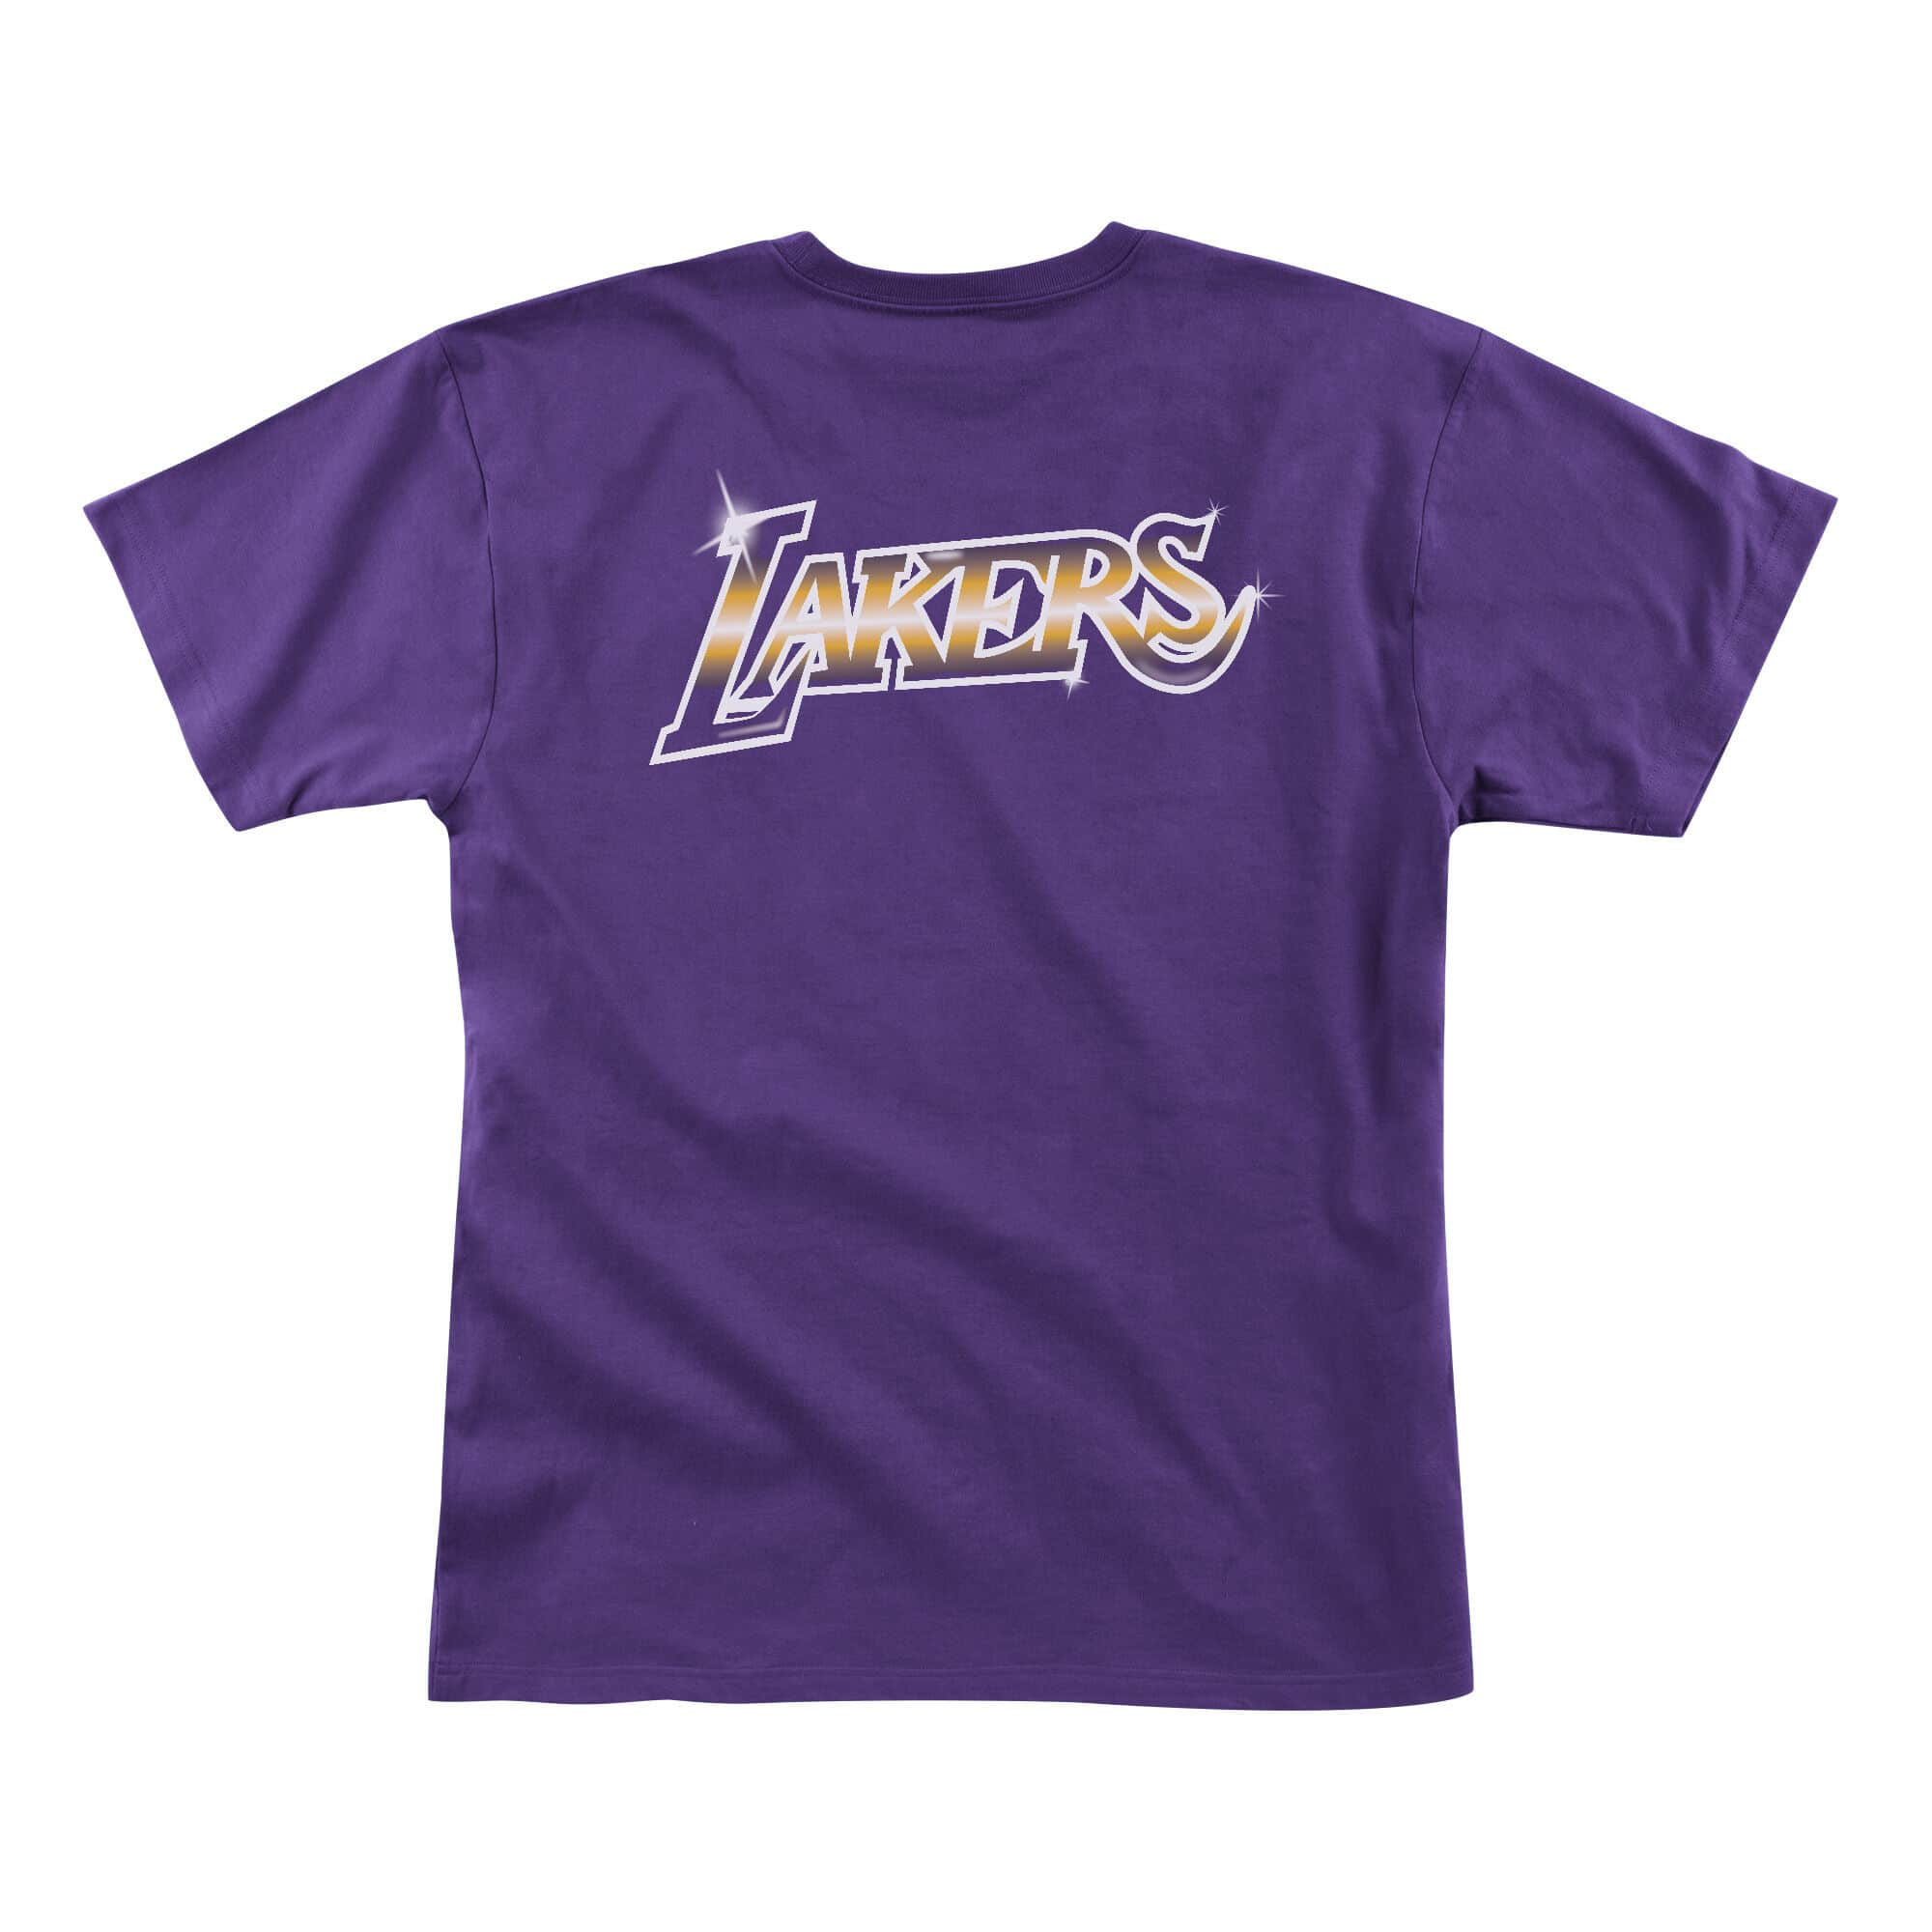 MITCHELL & NESS AIRBRUSH TEAM PURPLE TEE LOS ANGELES LAKERS